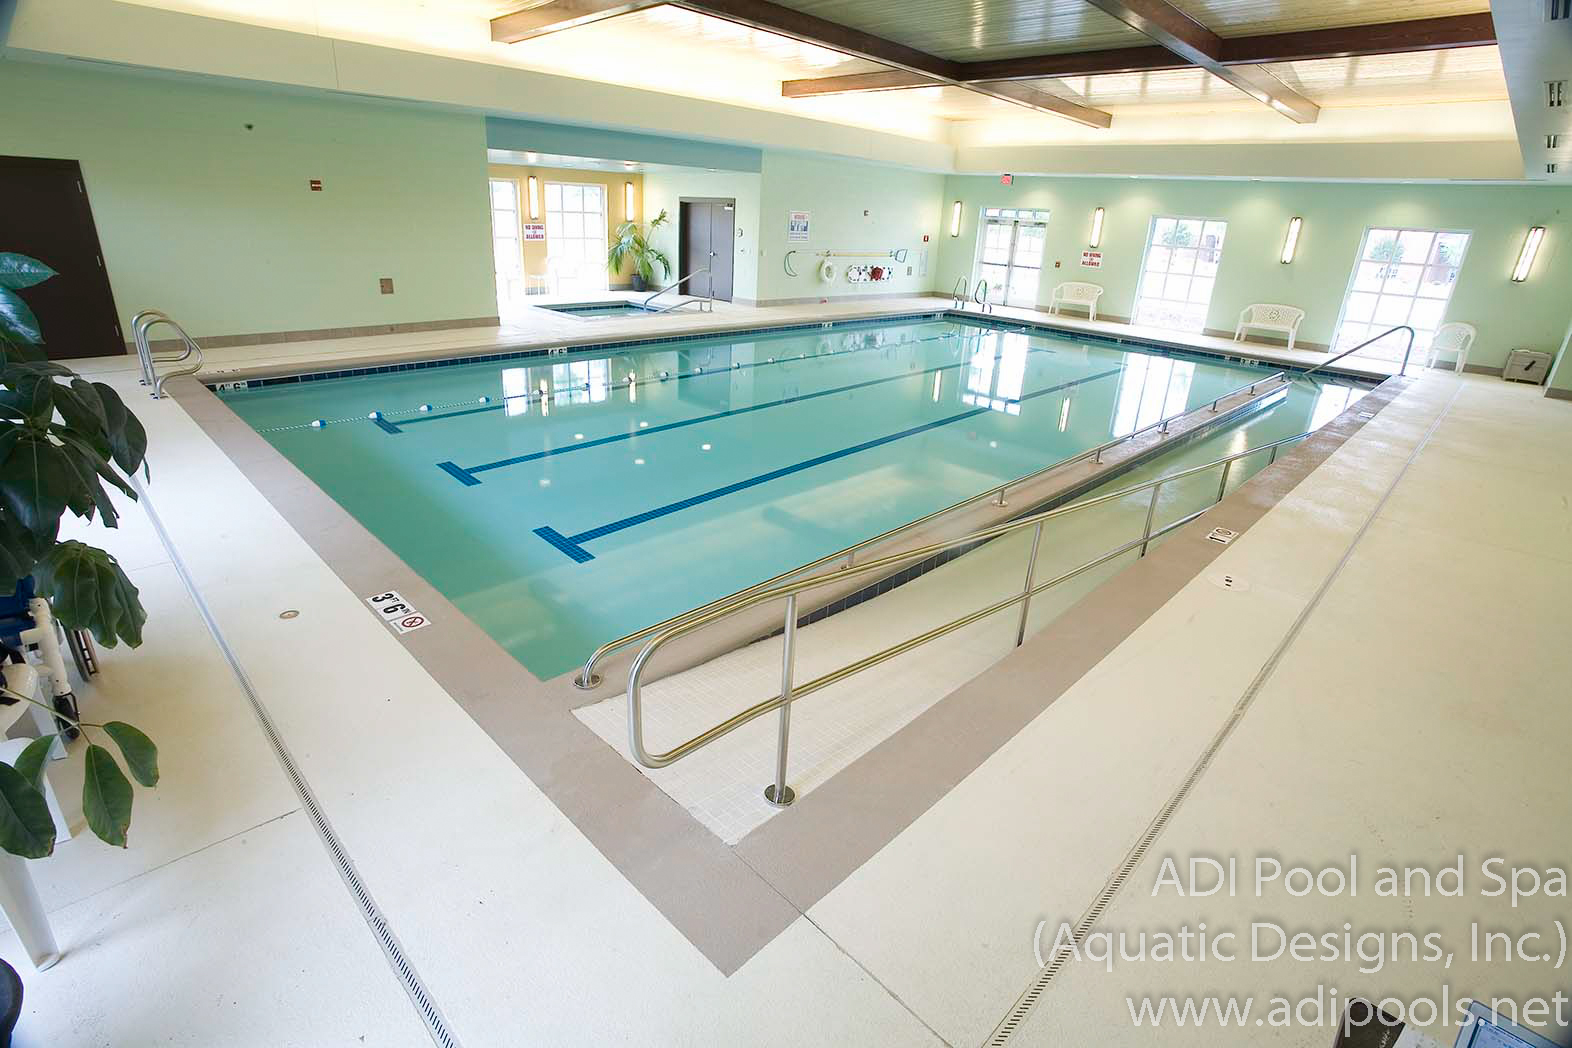 10-therapy-pool-with-ramp.jpg